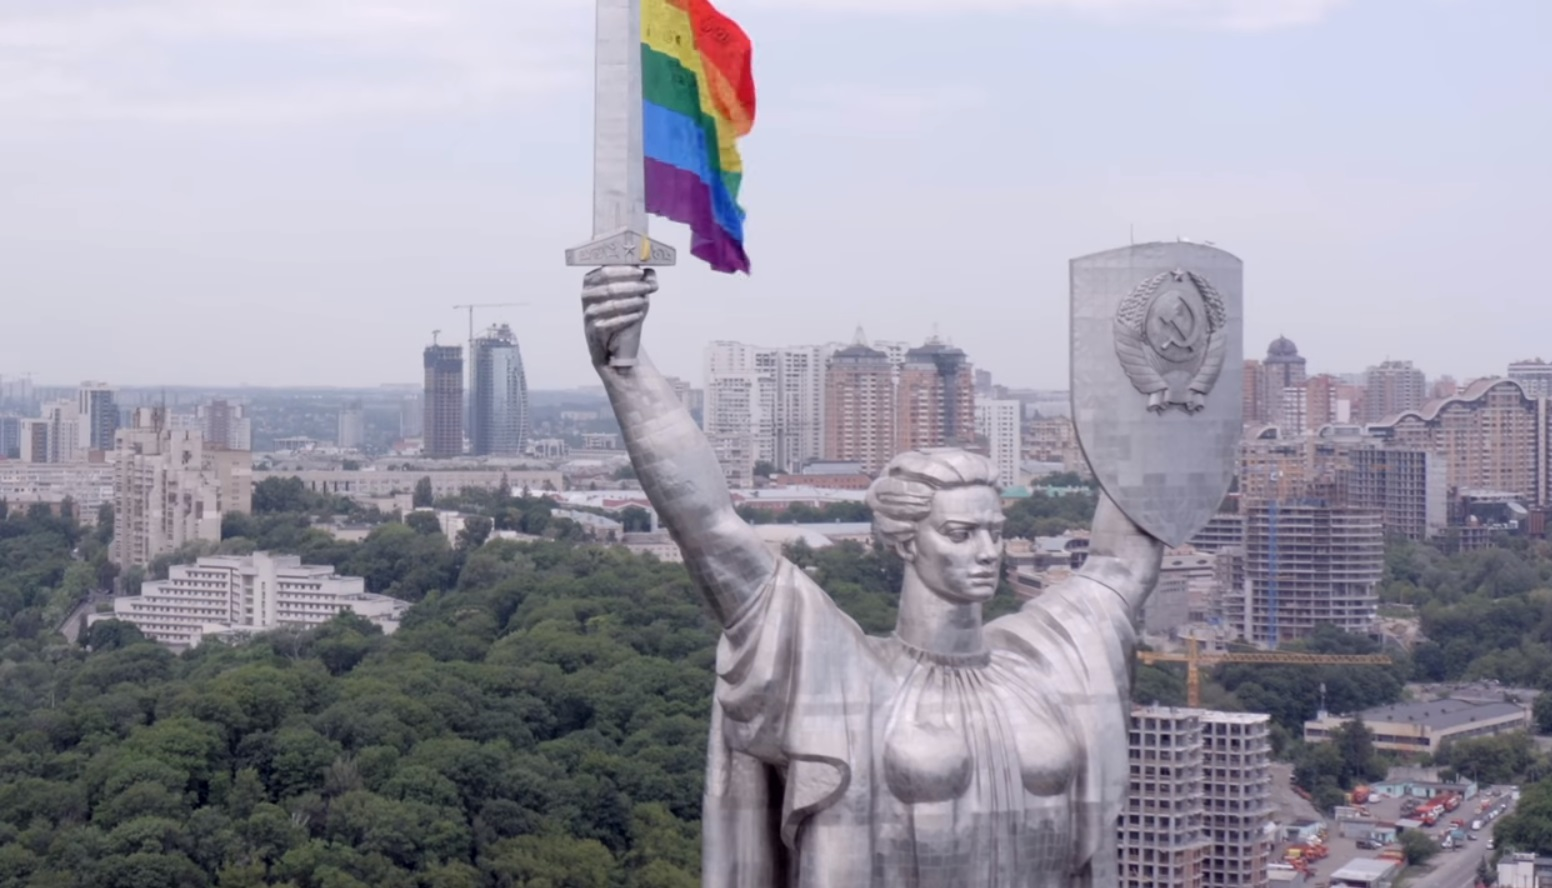 LGBT+ activists from Kyiv Pride devised the stunt after cancelling their 2020 parade